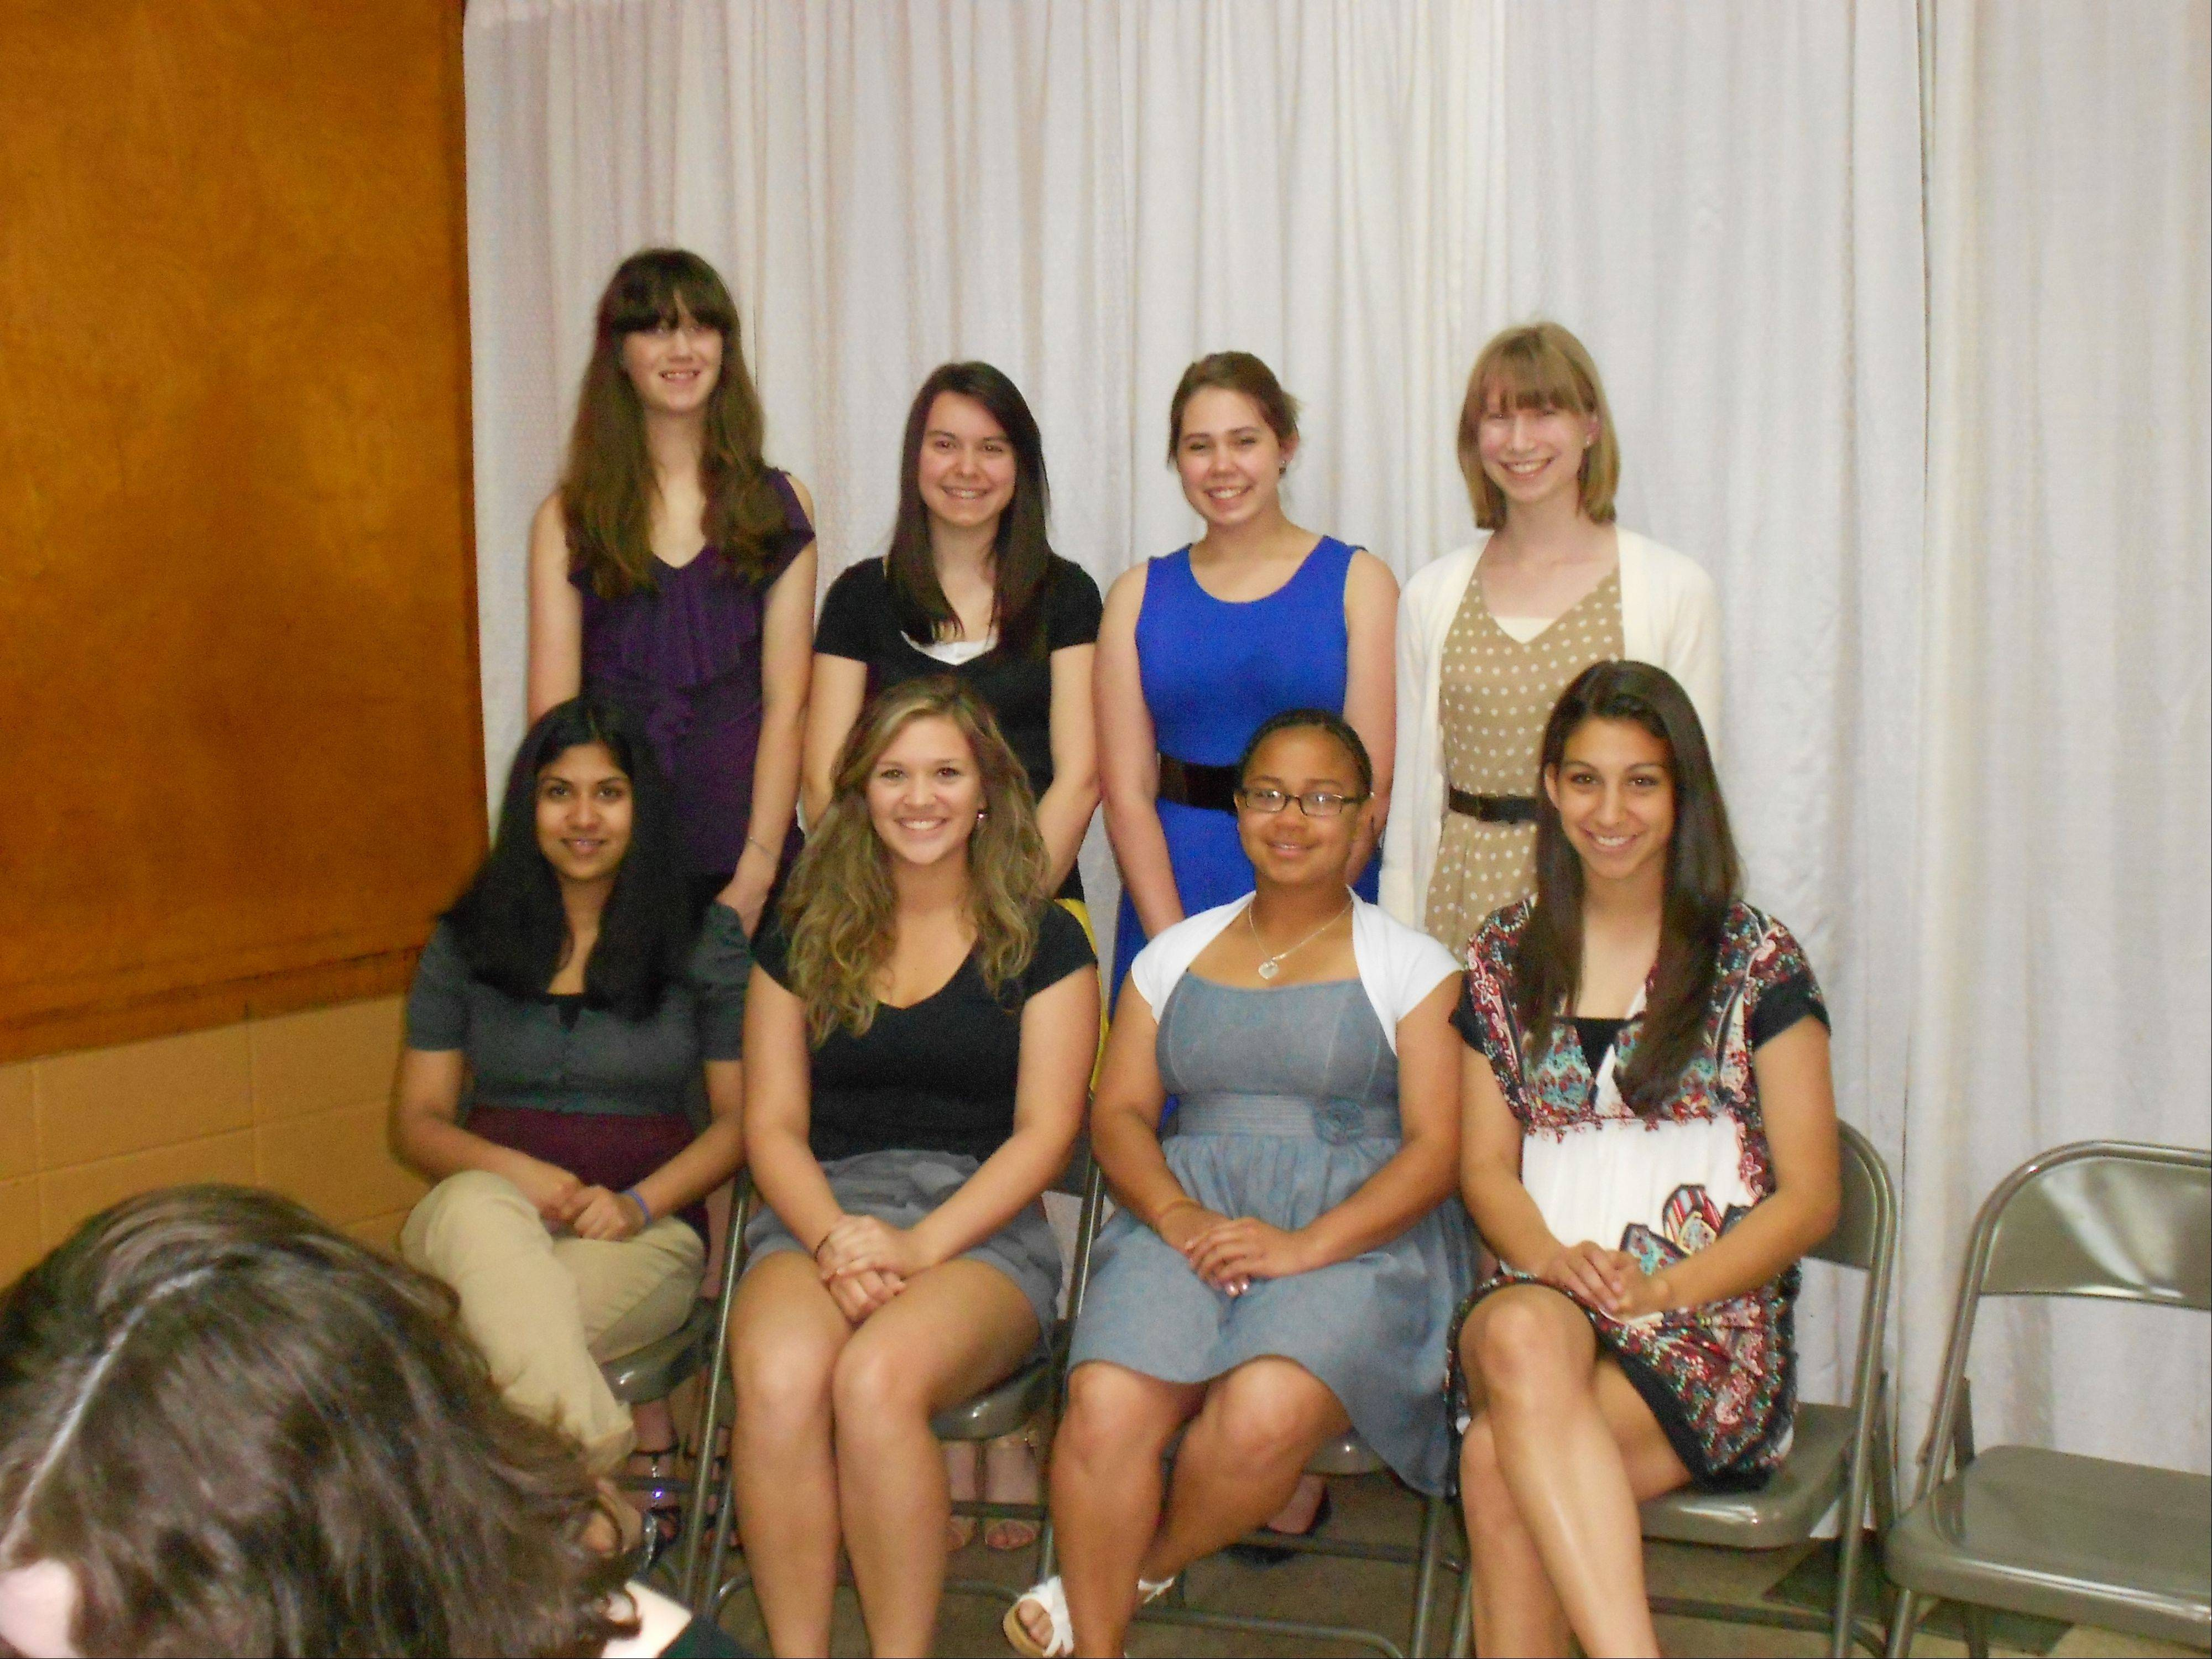 Participants selected to attend the American Legion Girls State program by Lake Region Unit 703, Zion Benton Unit 865 and Wauconda Unit 911 were, front row: Migana Audipudy, Gianna Gigliotte, Destiny Harrell and Felicia Menon; back row: Danielle Von Helms, Olga Krapivner, Adelle McDaniel and Shealeign Funni.